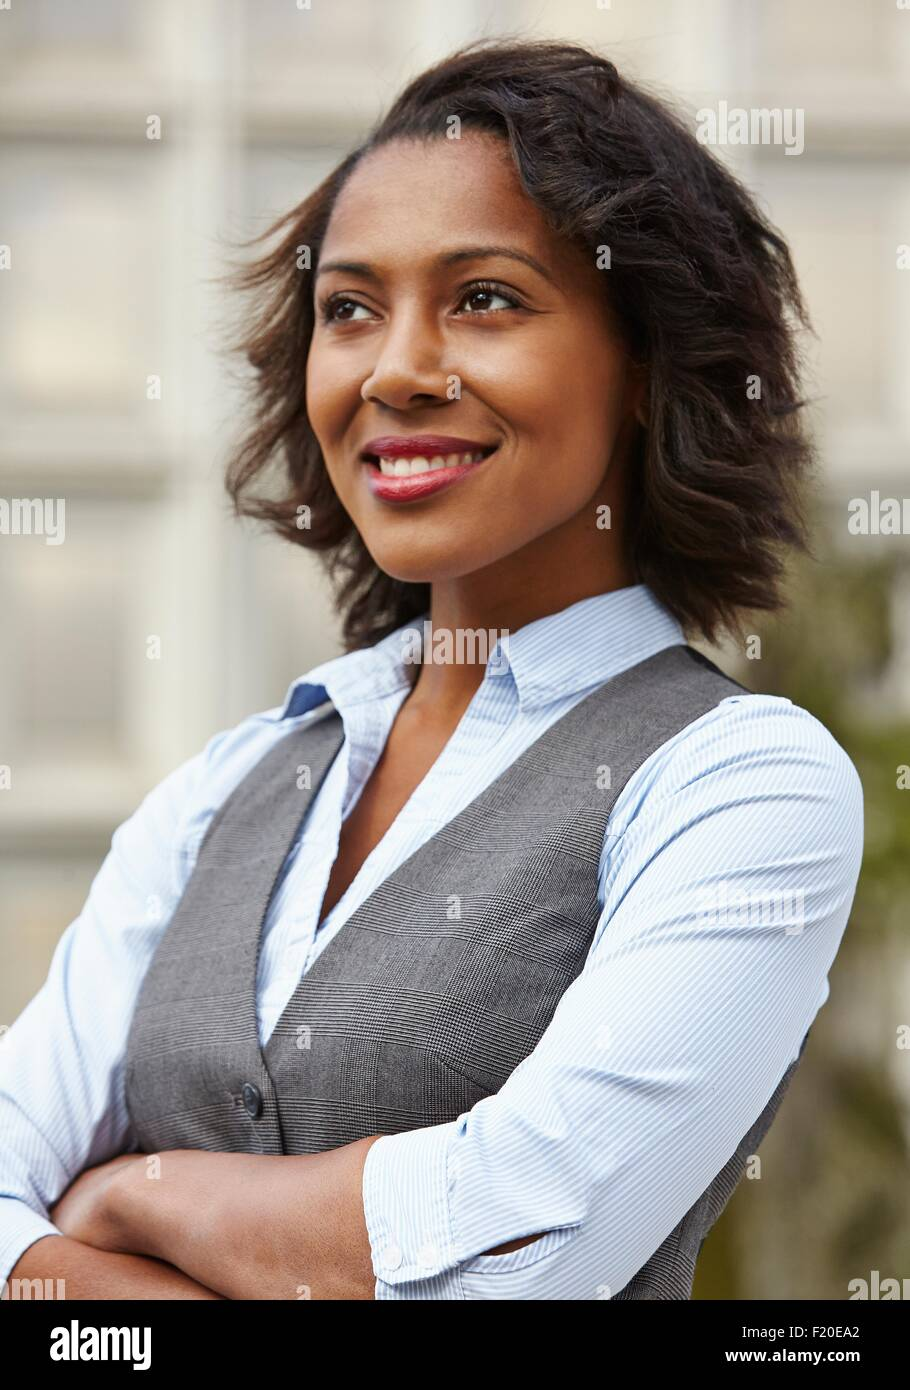 Portrait of young business woman, wearing waistcoat, looking away, arms folded, smiling - Stock Image